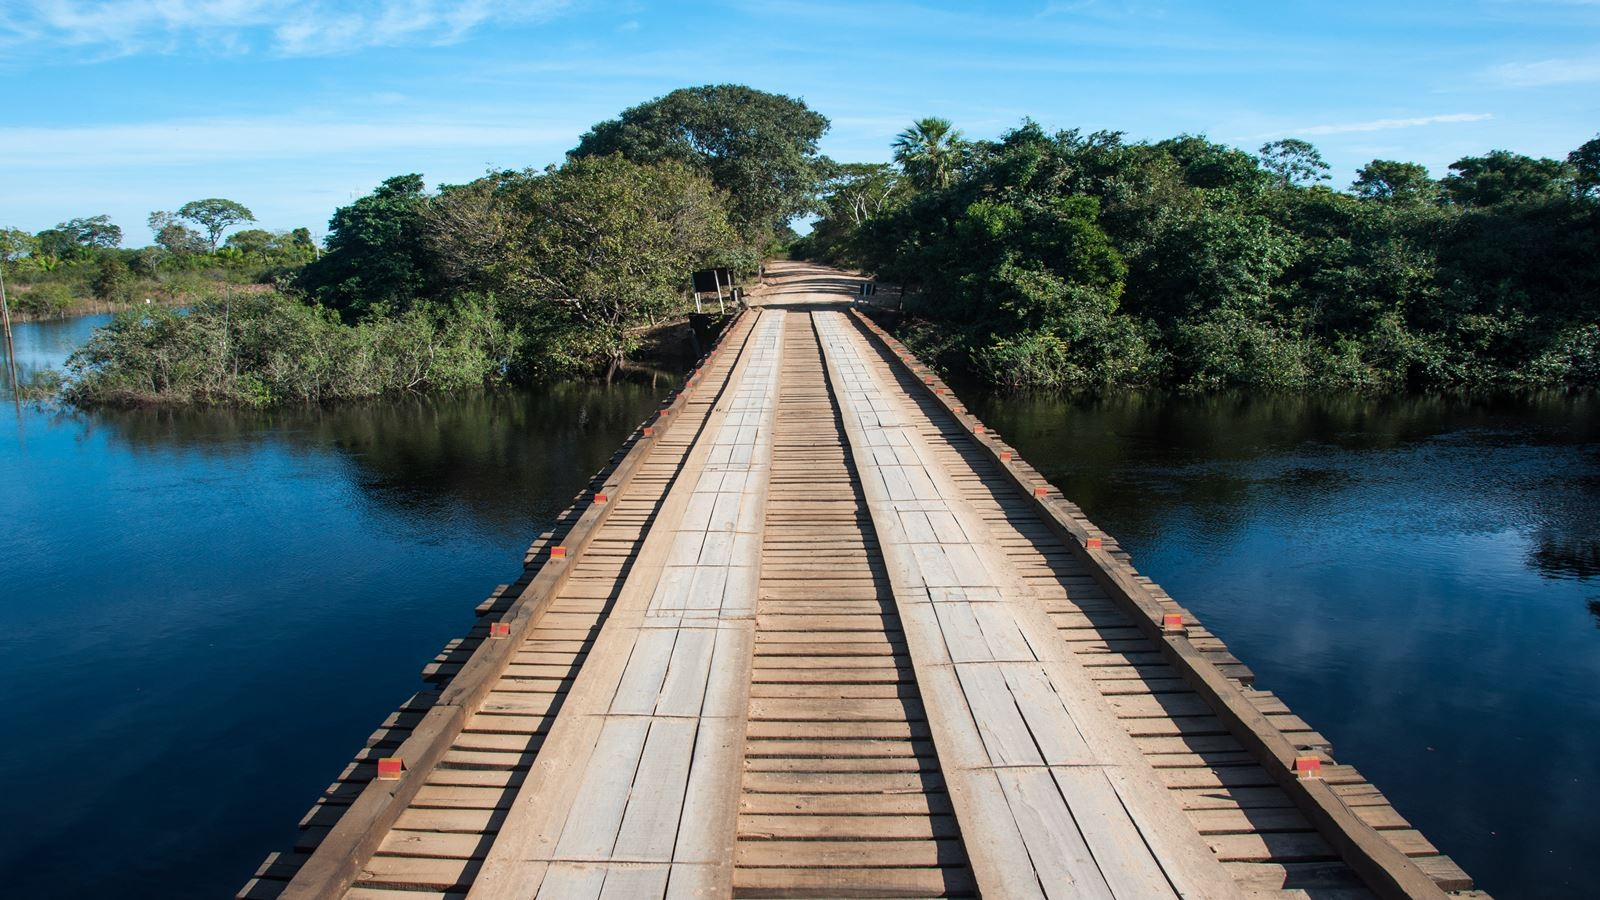 Wooden bridge in the wet lands of Pantanal, Brazil.